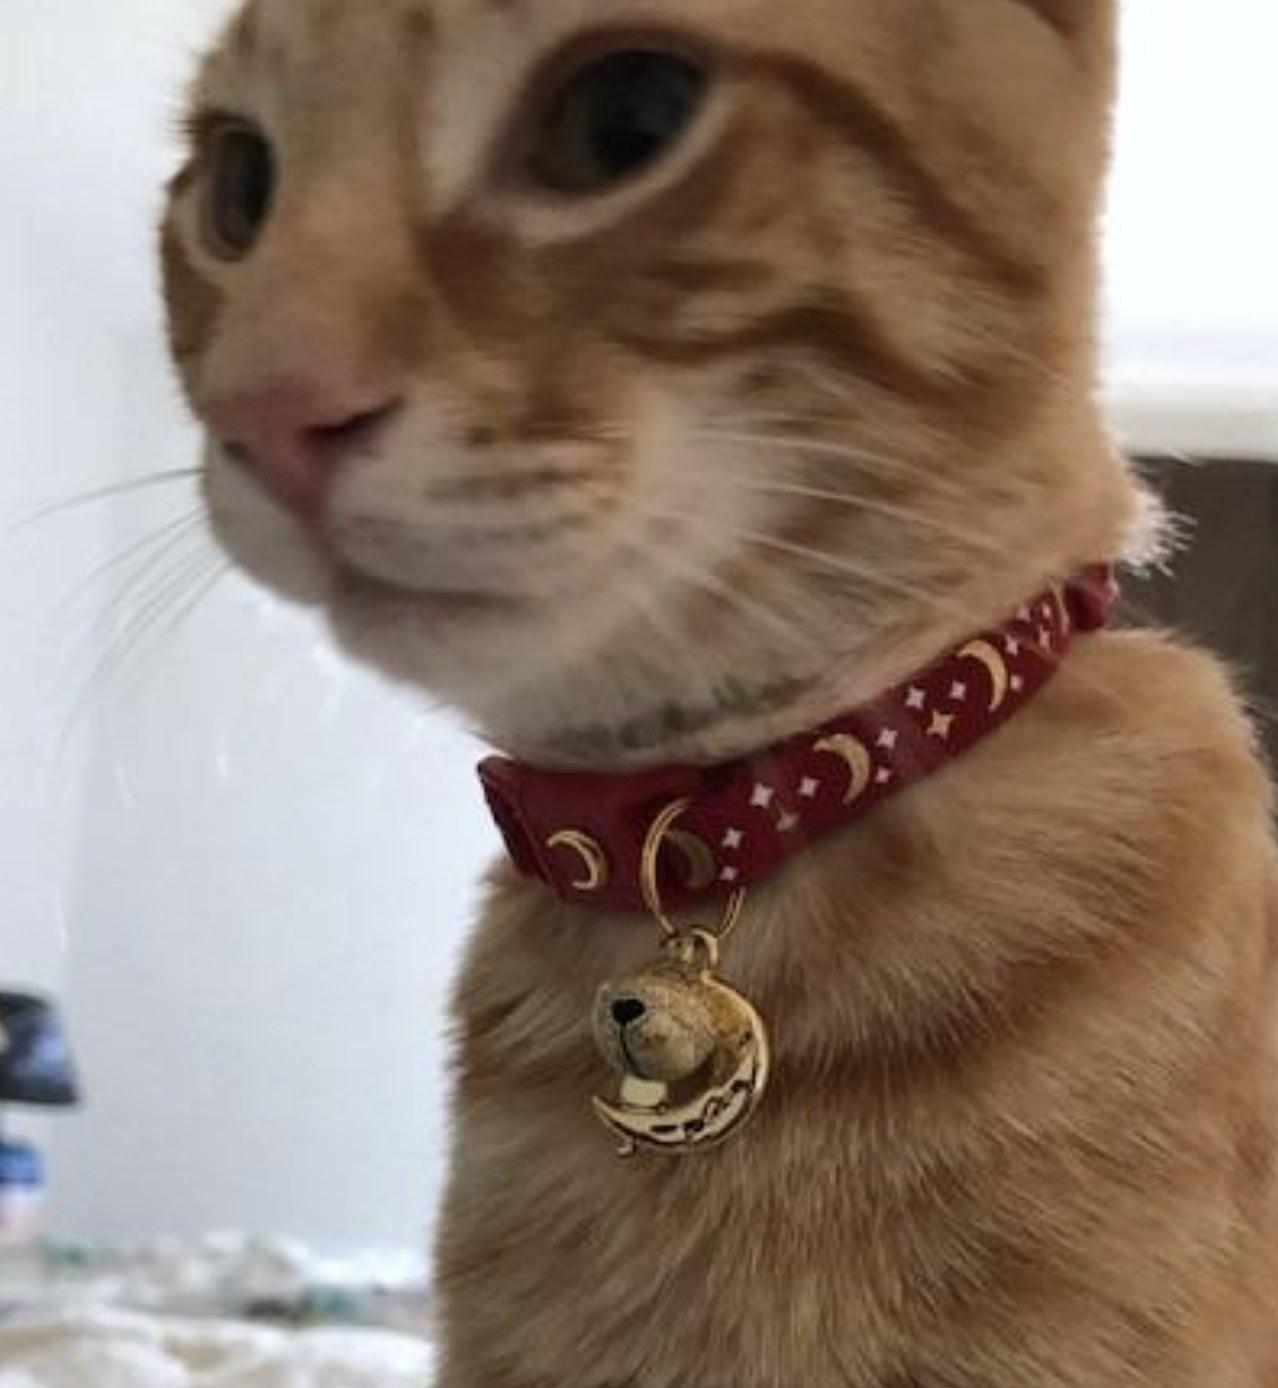 an orange cat wearing a red collar with moons on it and a bell and cresent moon charm